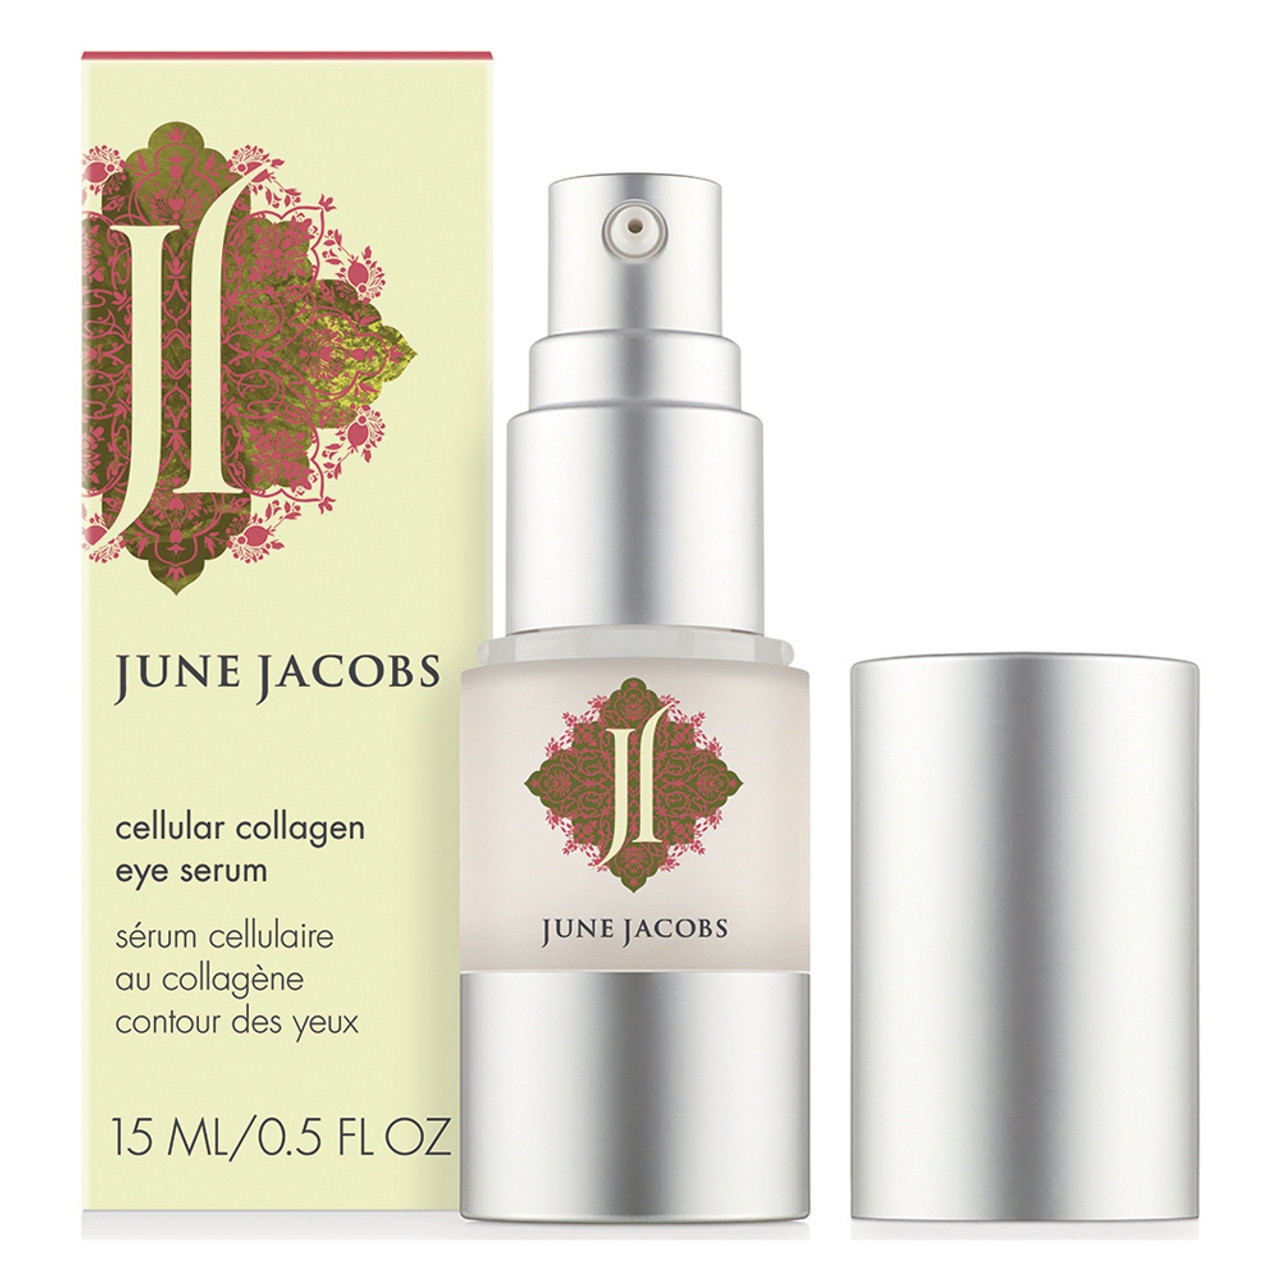 June Jacobs Cellular Collagen Eye Serum